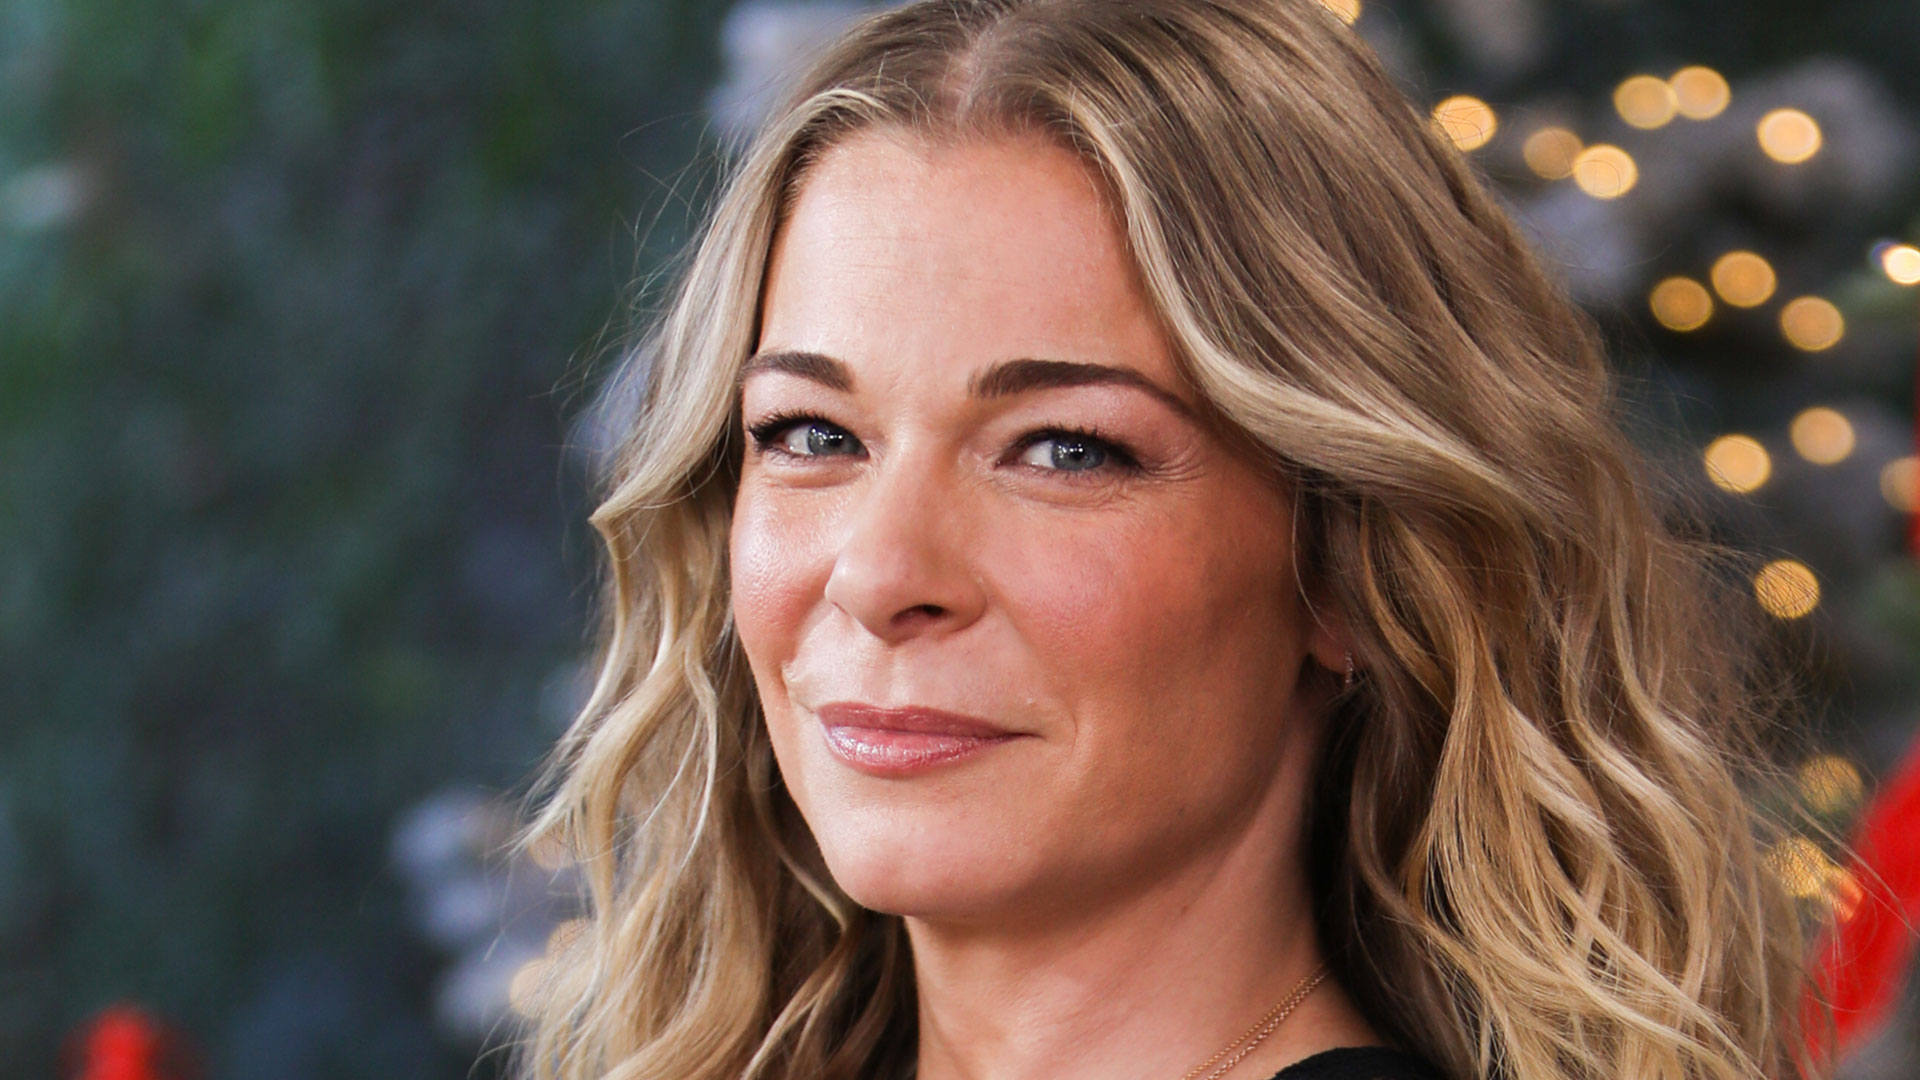 LeAnn Rimes Poses Nude To Show Her Psoriasis & Calls